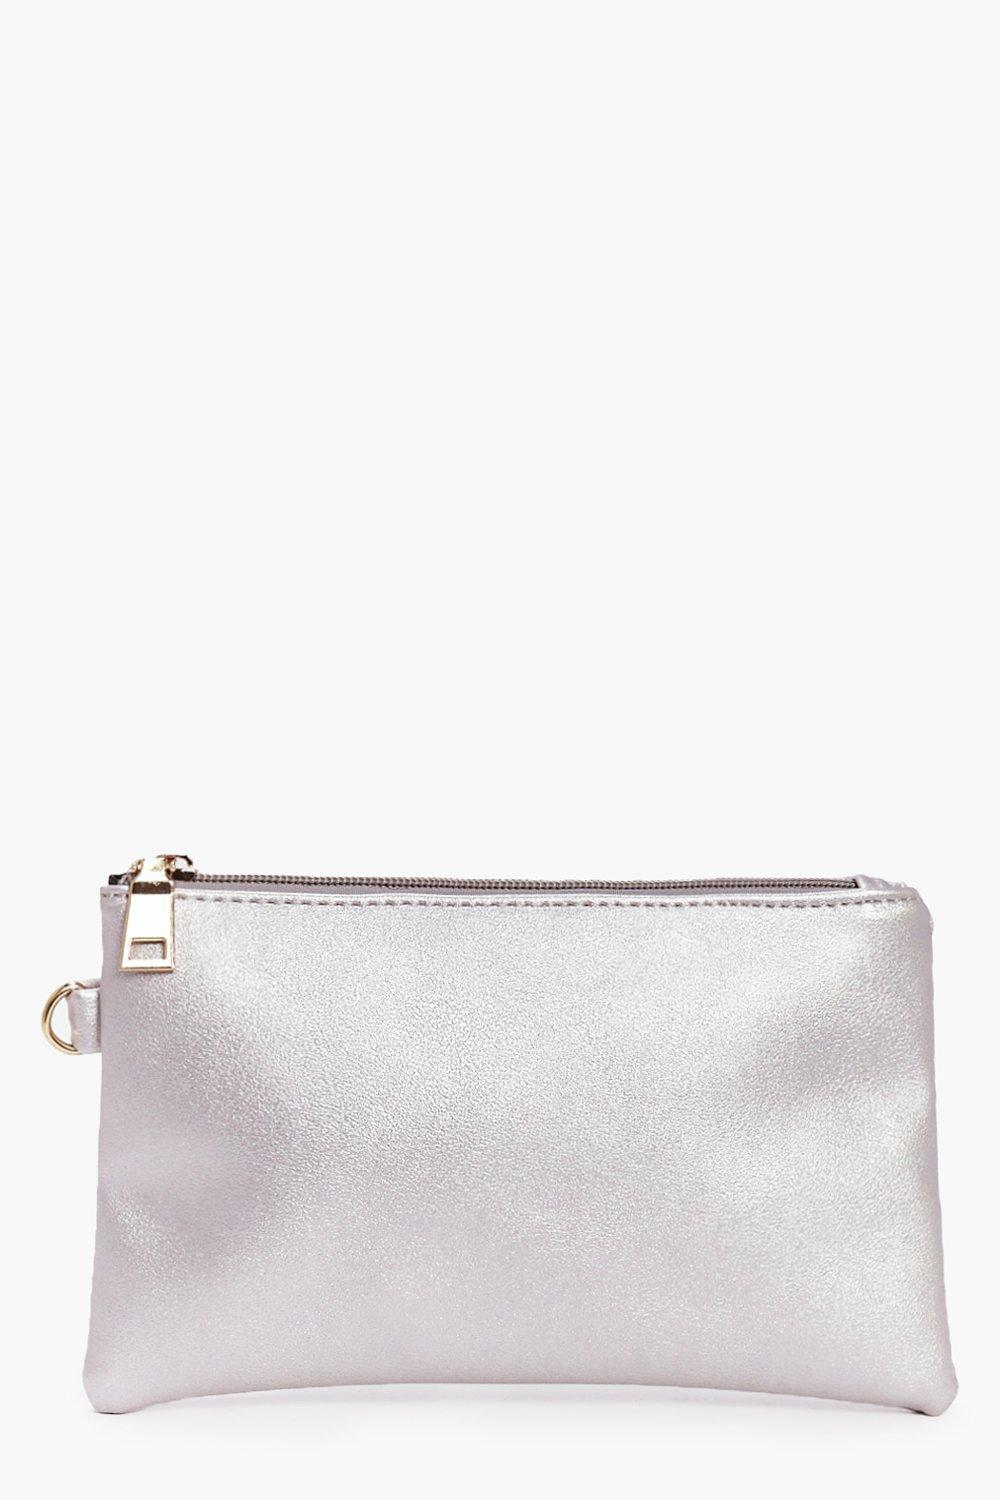 Zip Top Metallic Make Up Bag